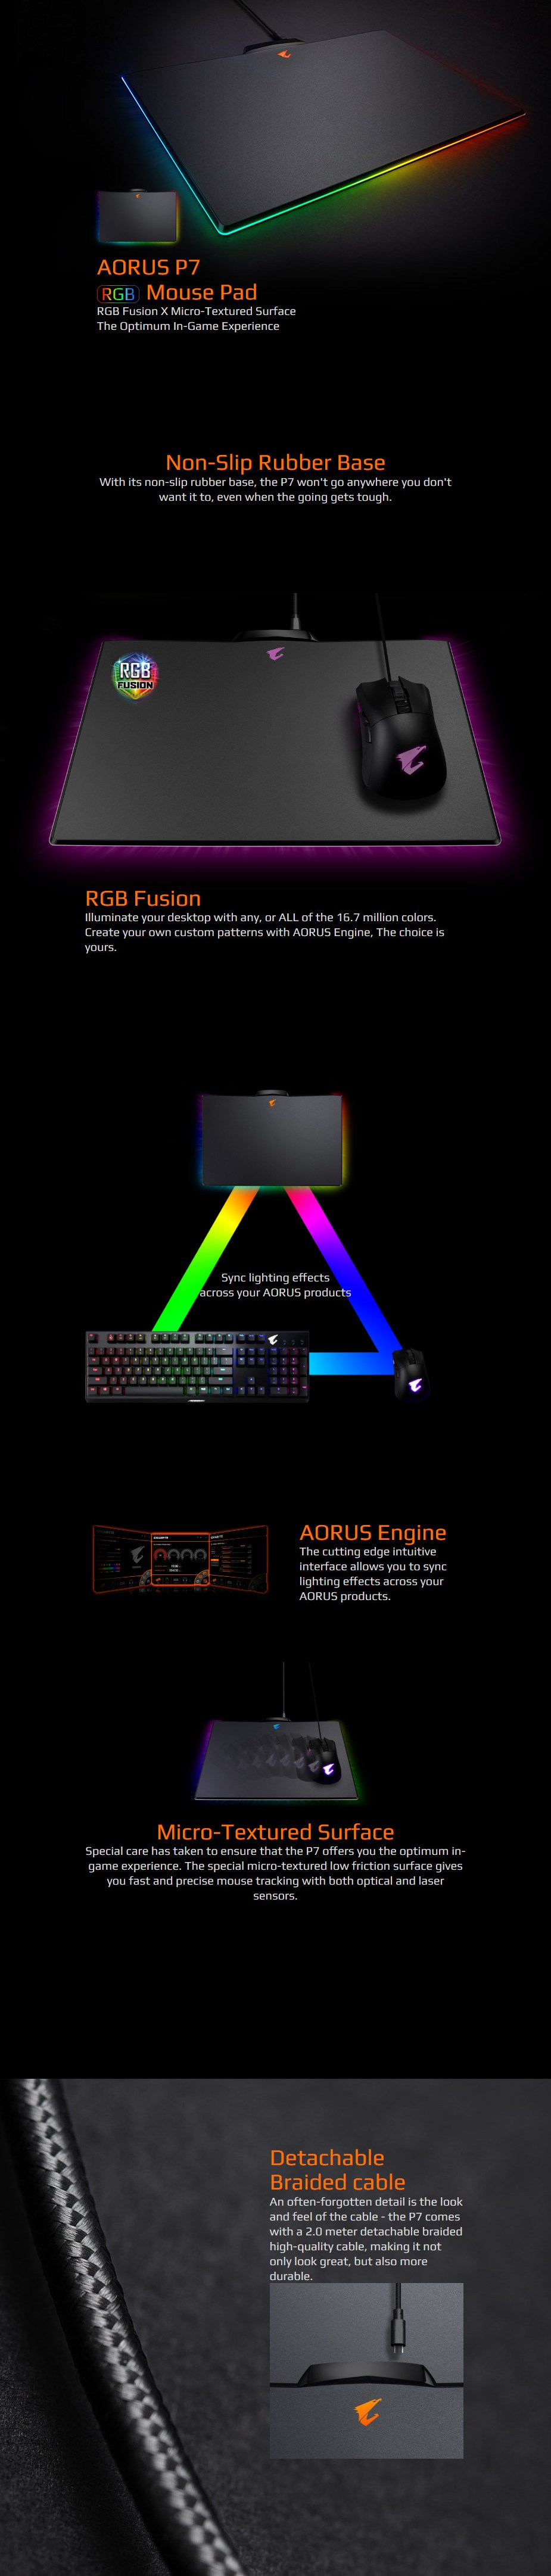 Gigabyte AORUS P7 RGB Fusion Hard Gaming Mouse Pad - Desktop Overview 1